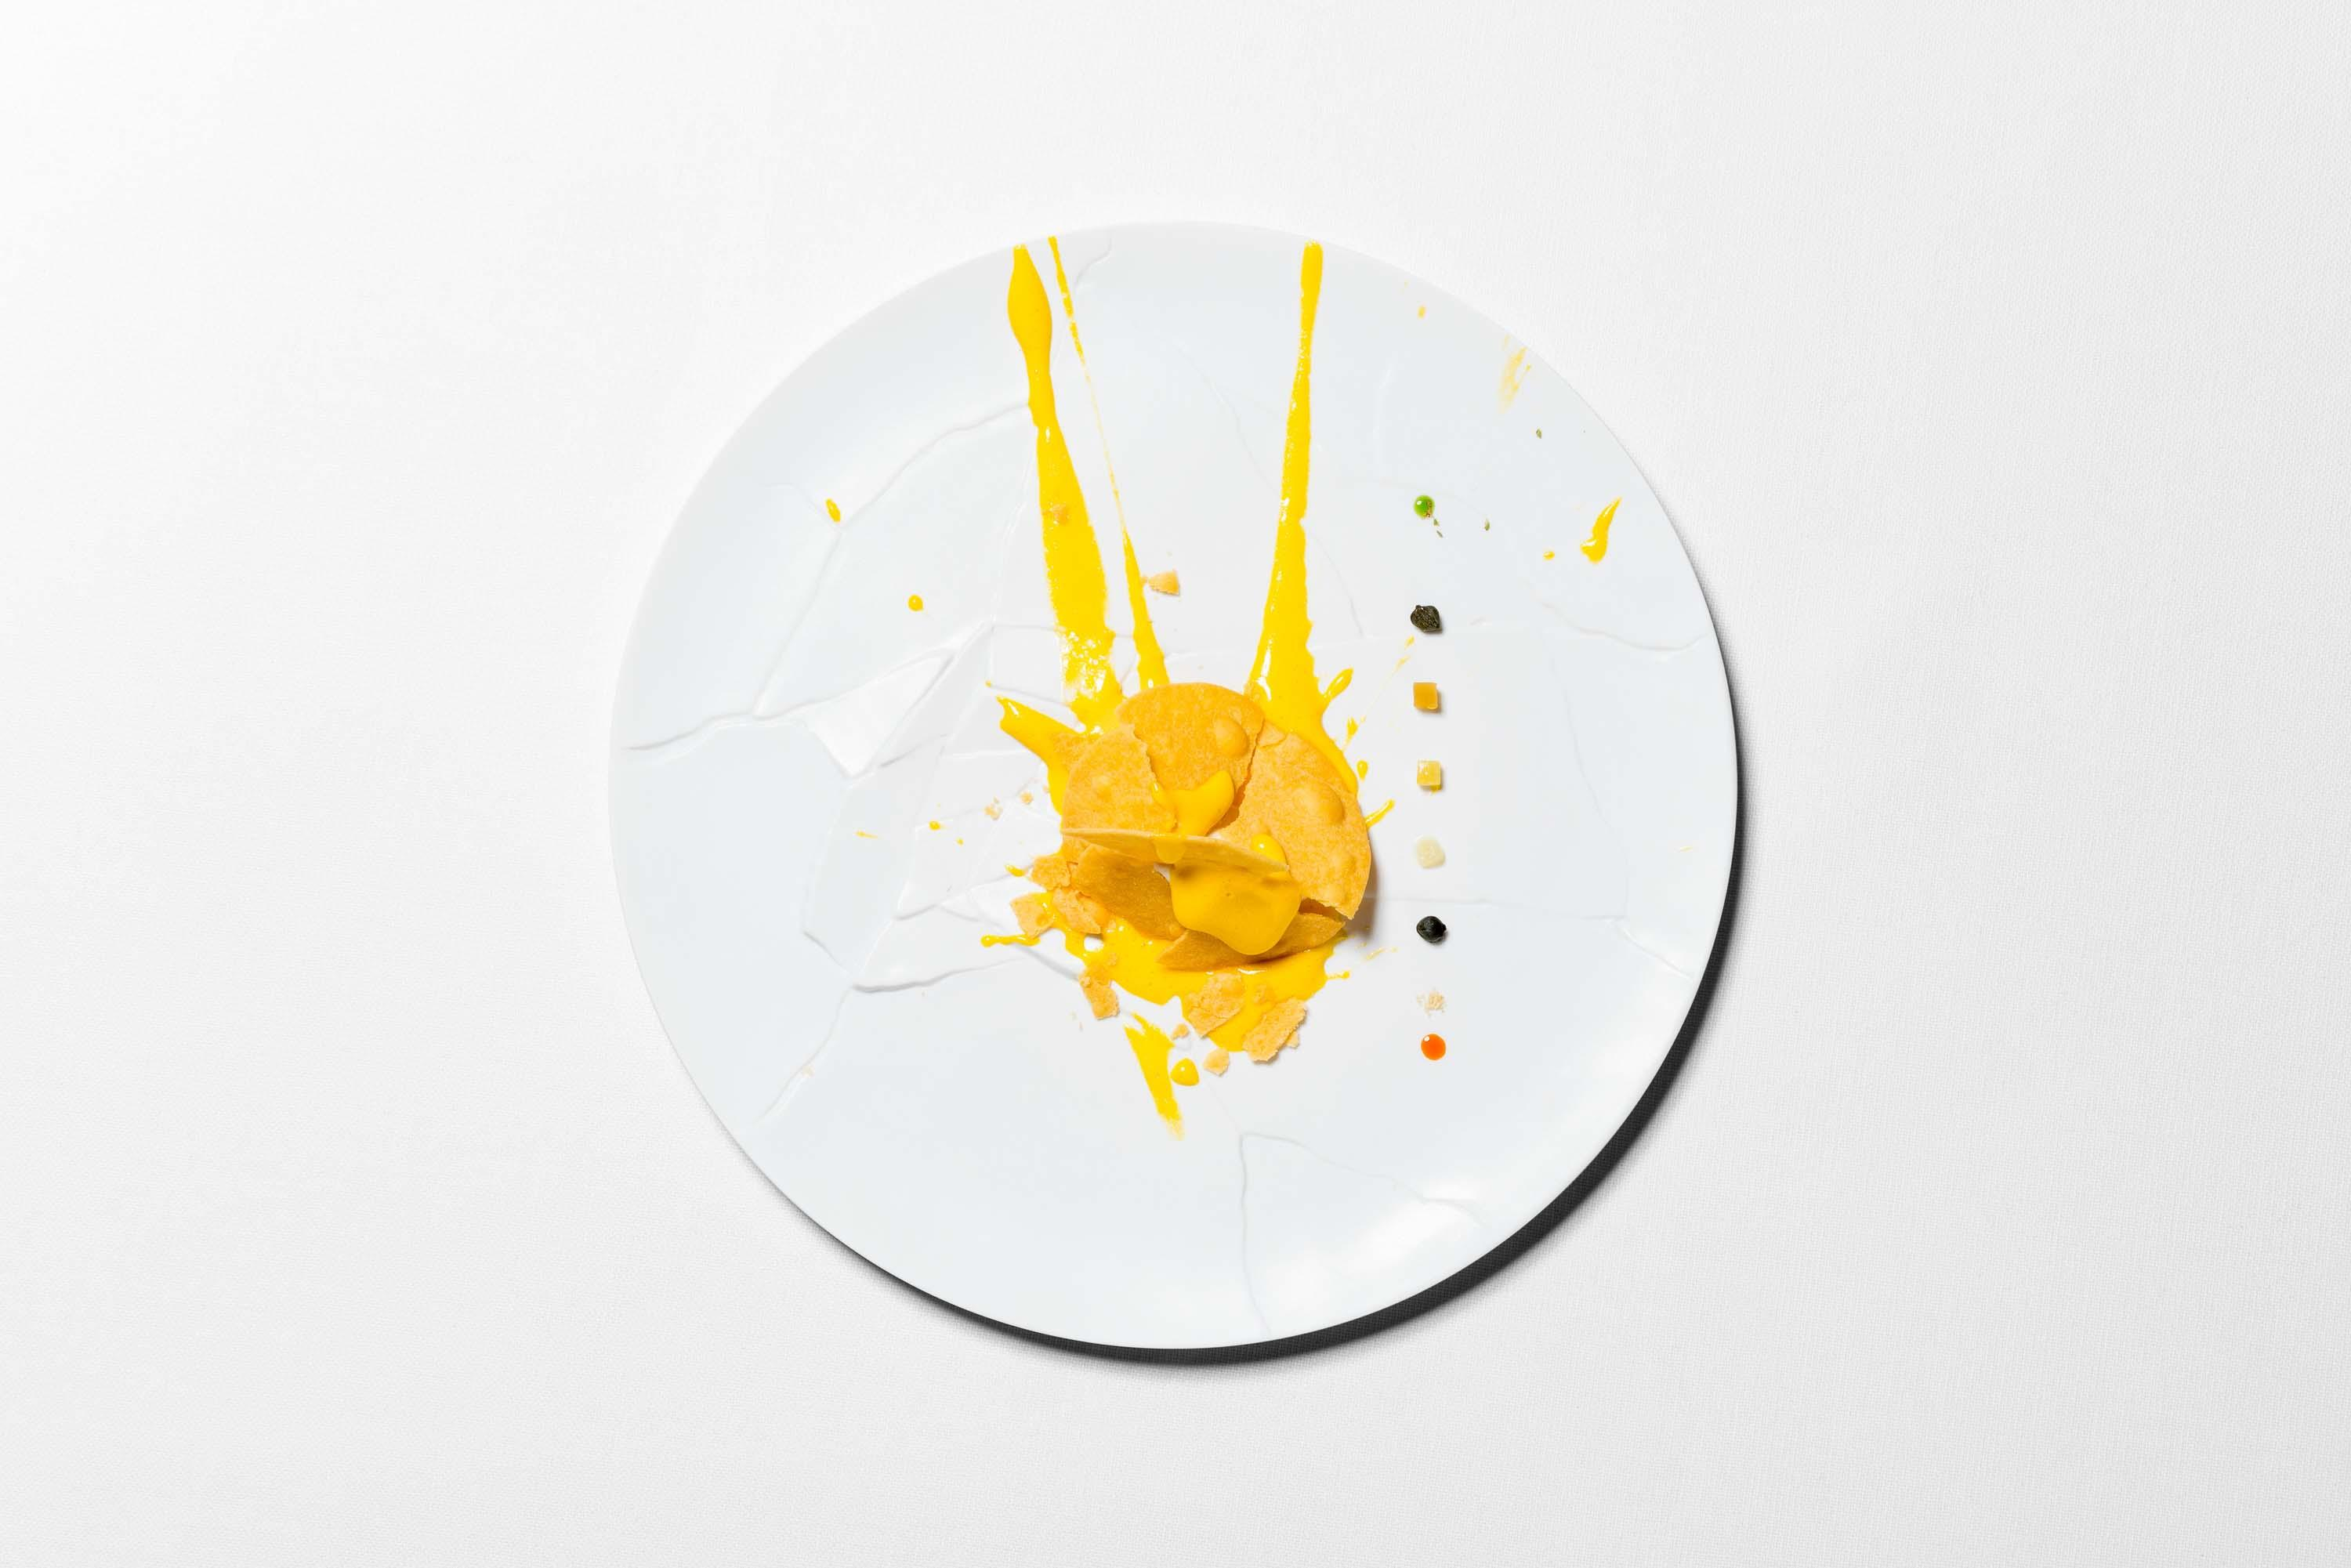 Oops I dropped the lemon tart_credits CALLO ALBANESE _ SUEO.jpg